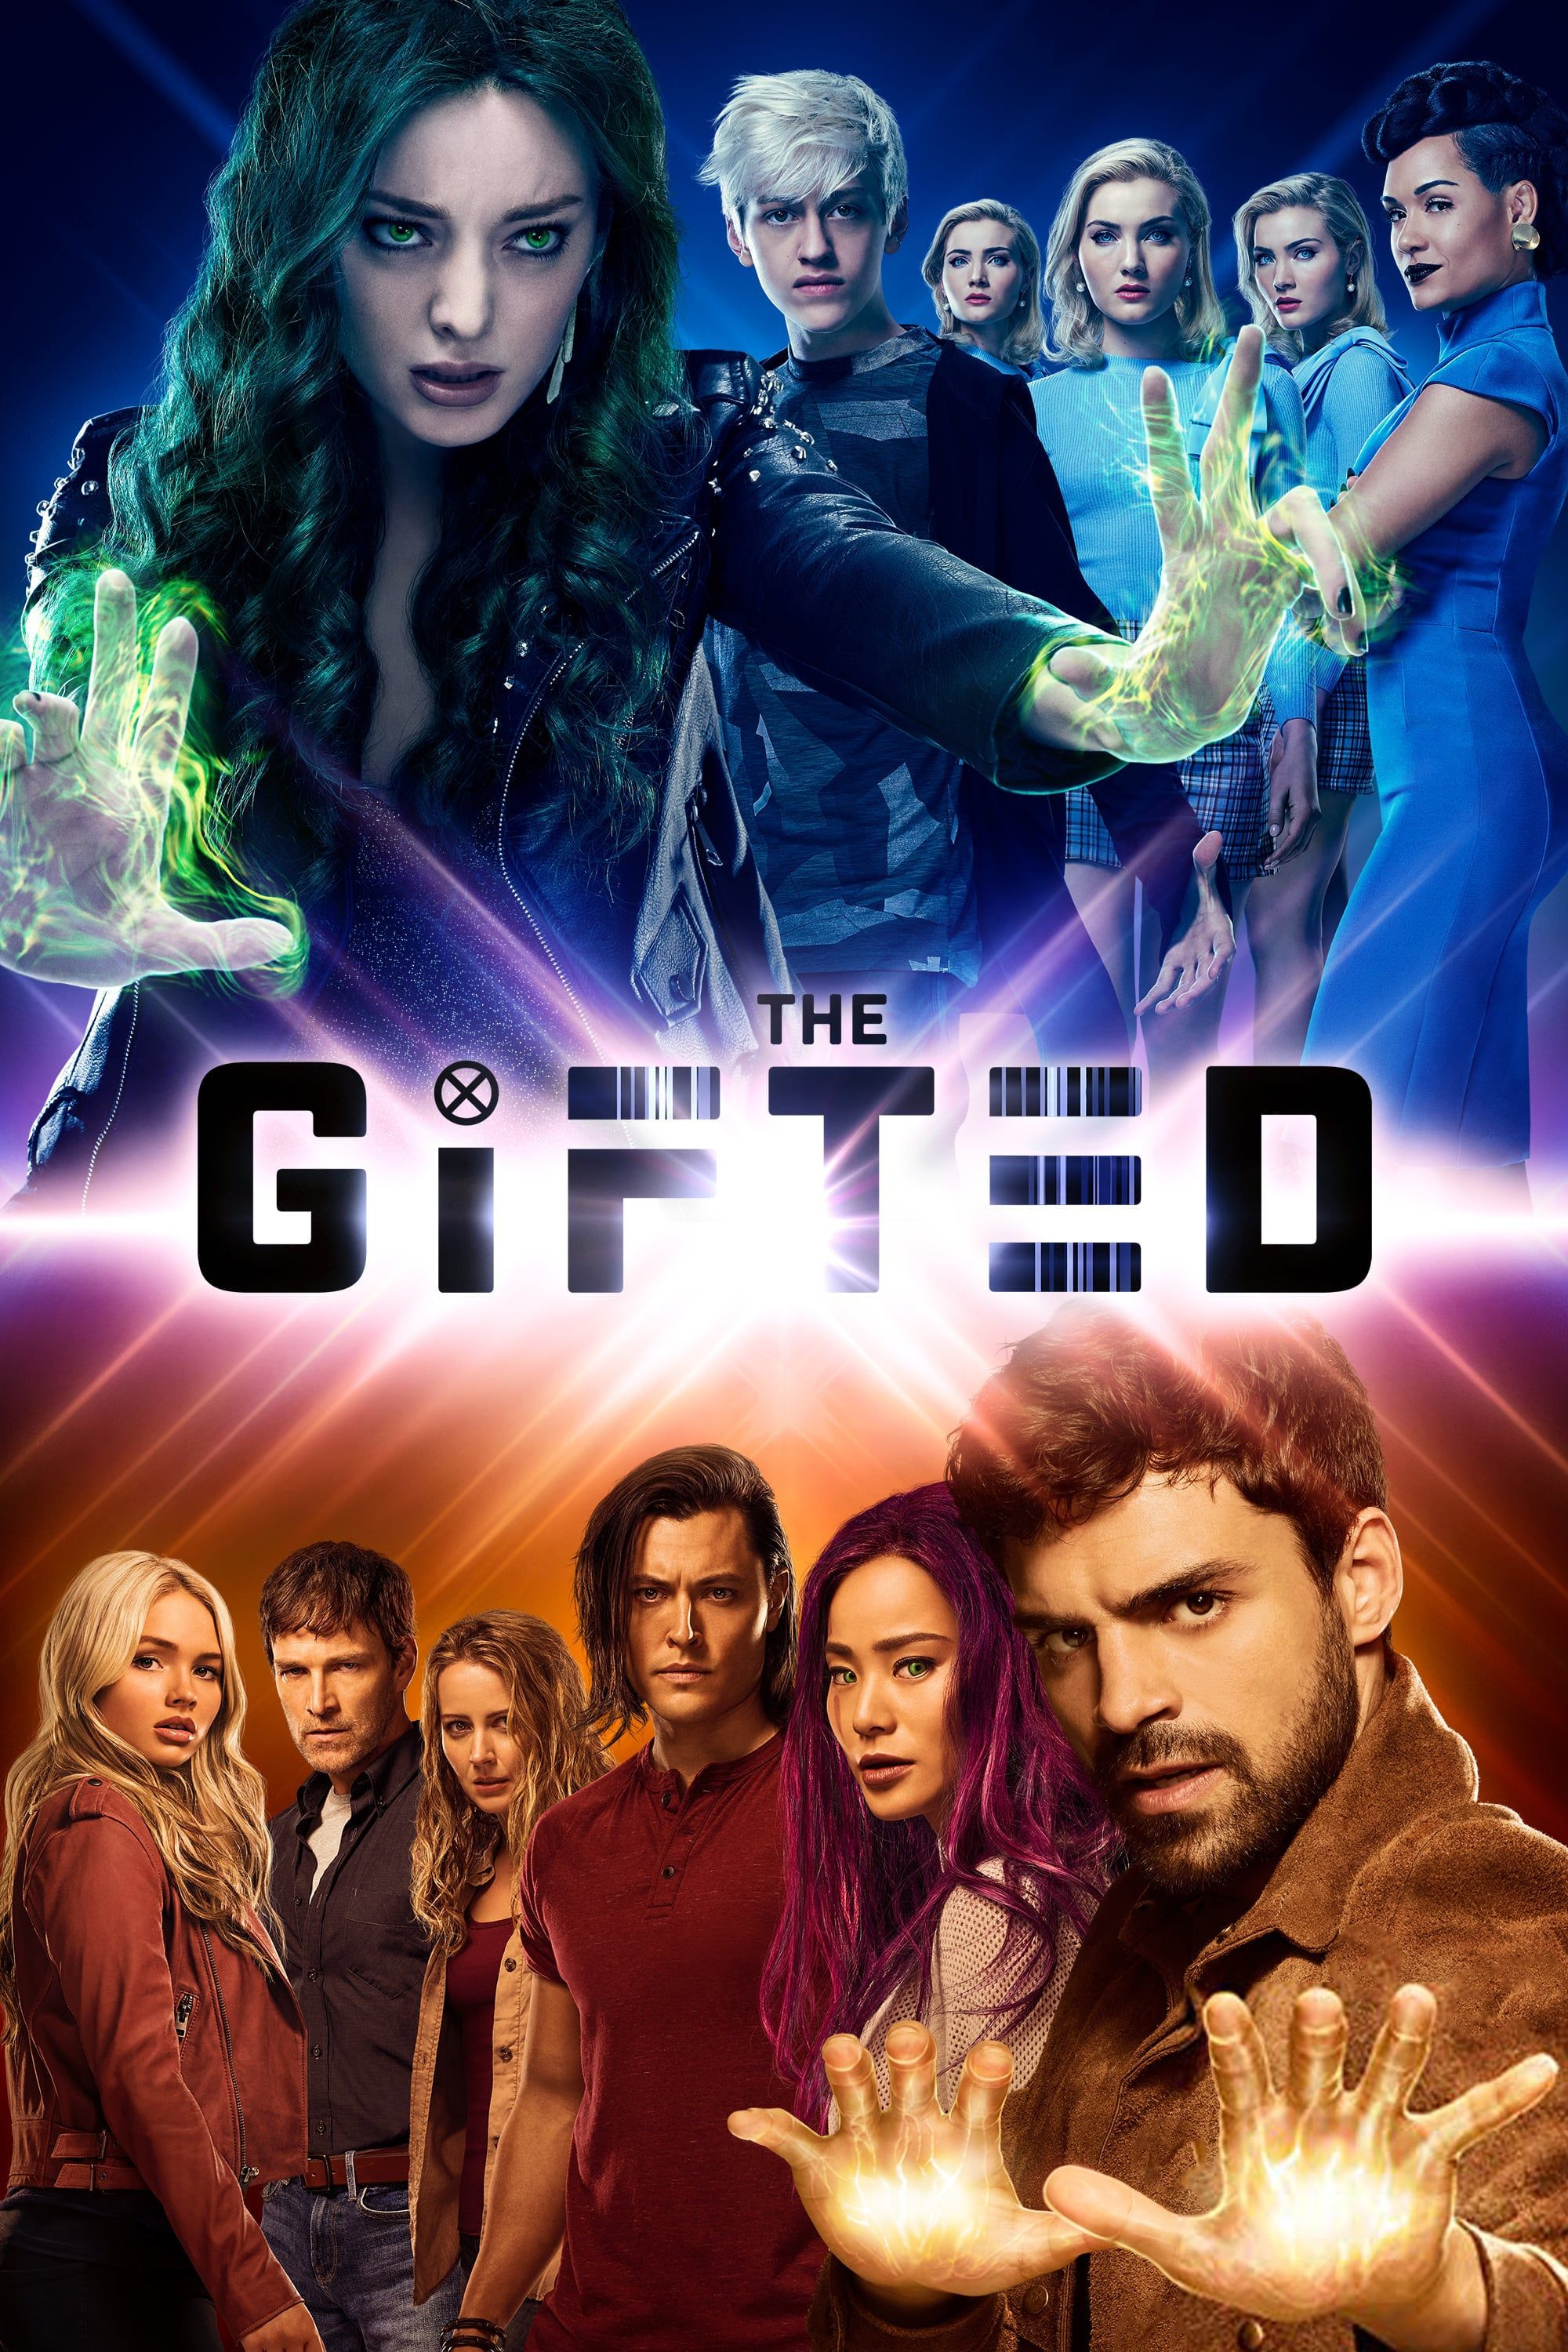 The Gifted Season 1 Filmes Series E Filmes Filmes E Series Online